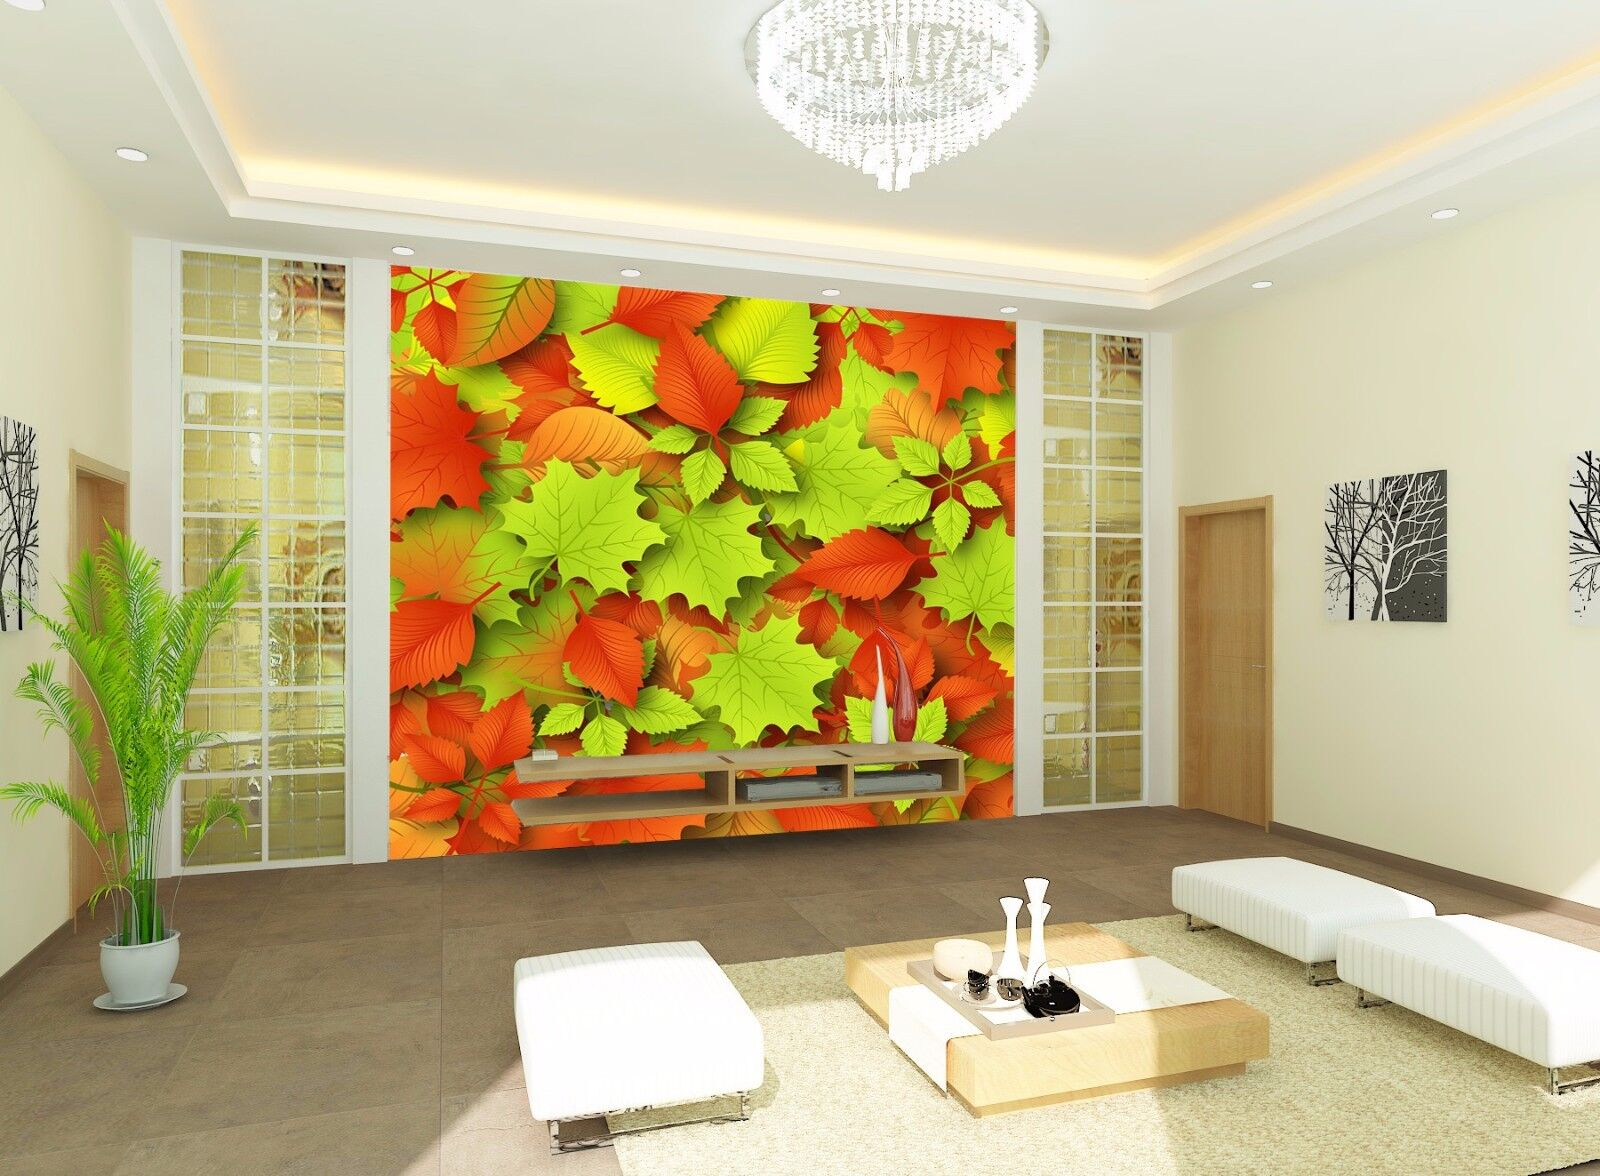 3D Maple Leaves 55 Wallpaper Murals Wall Print Wallpaper Mural AJ WALLPAPER UK